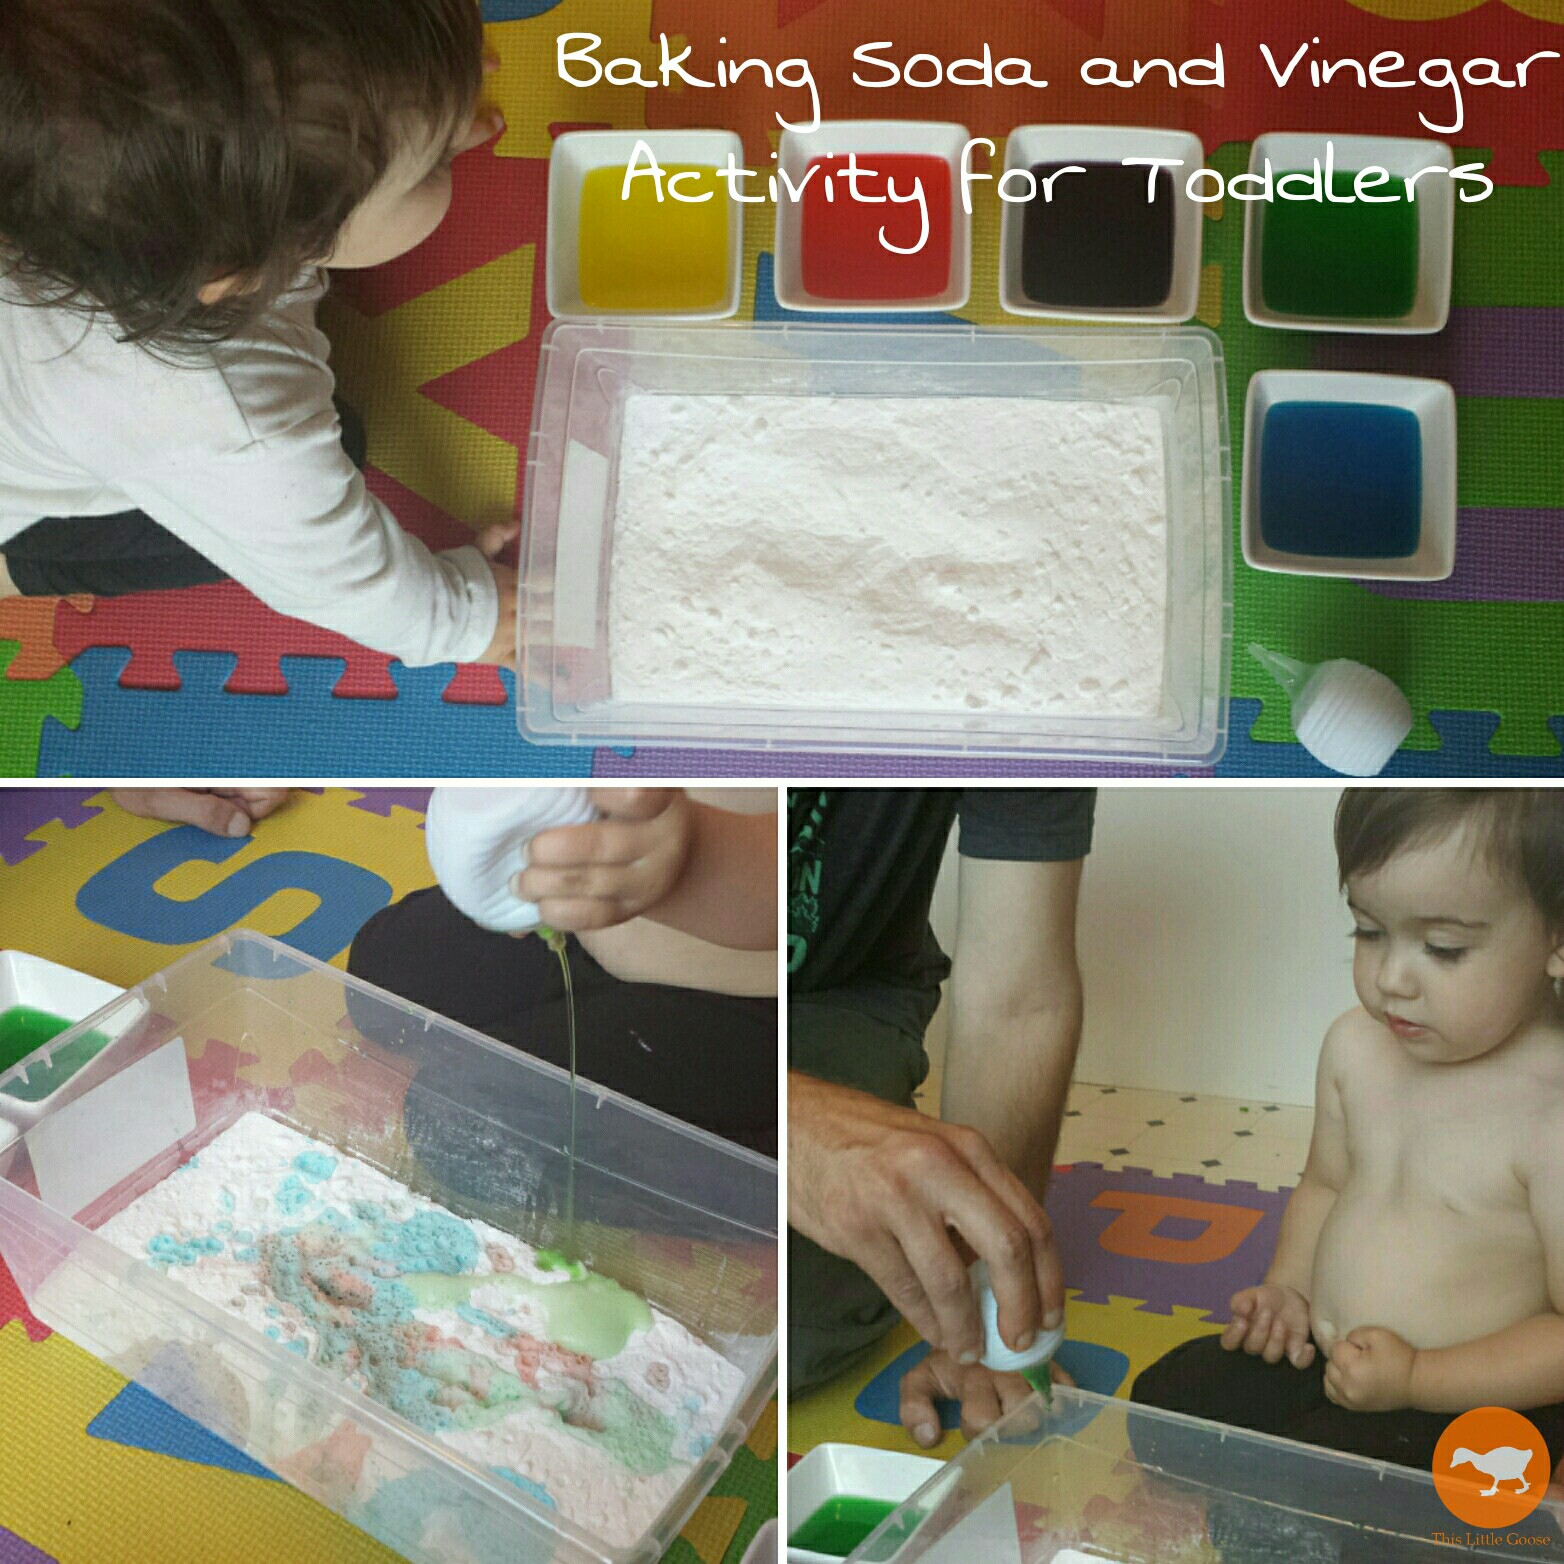 Baking Soda And Vinegar Activity For Toddlers